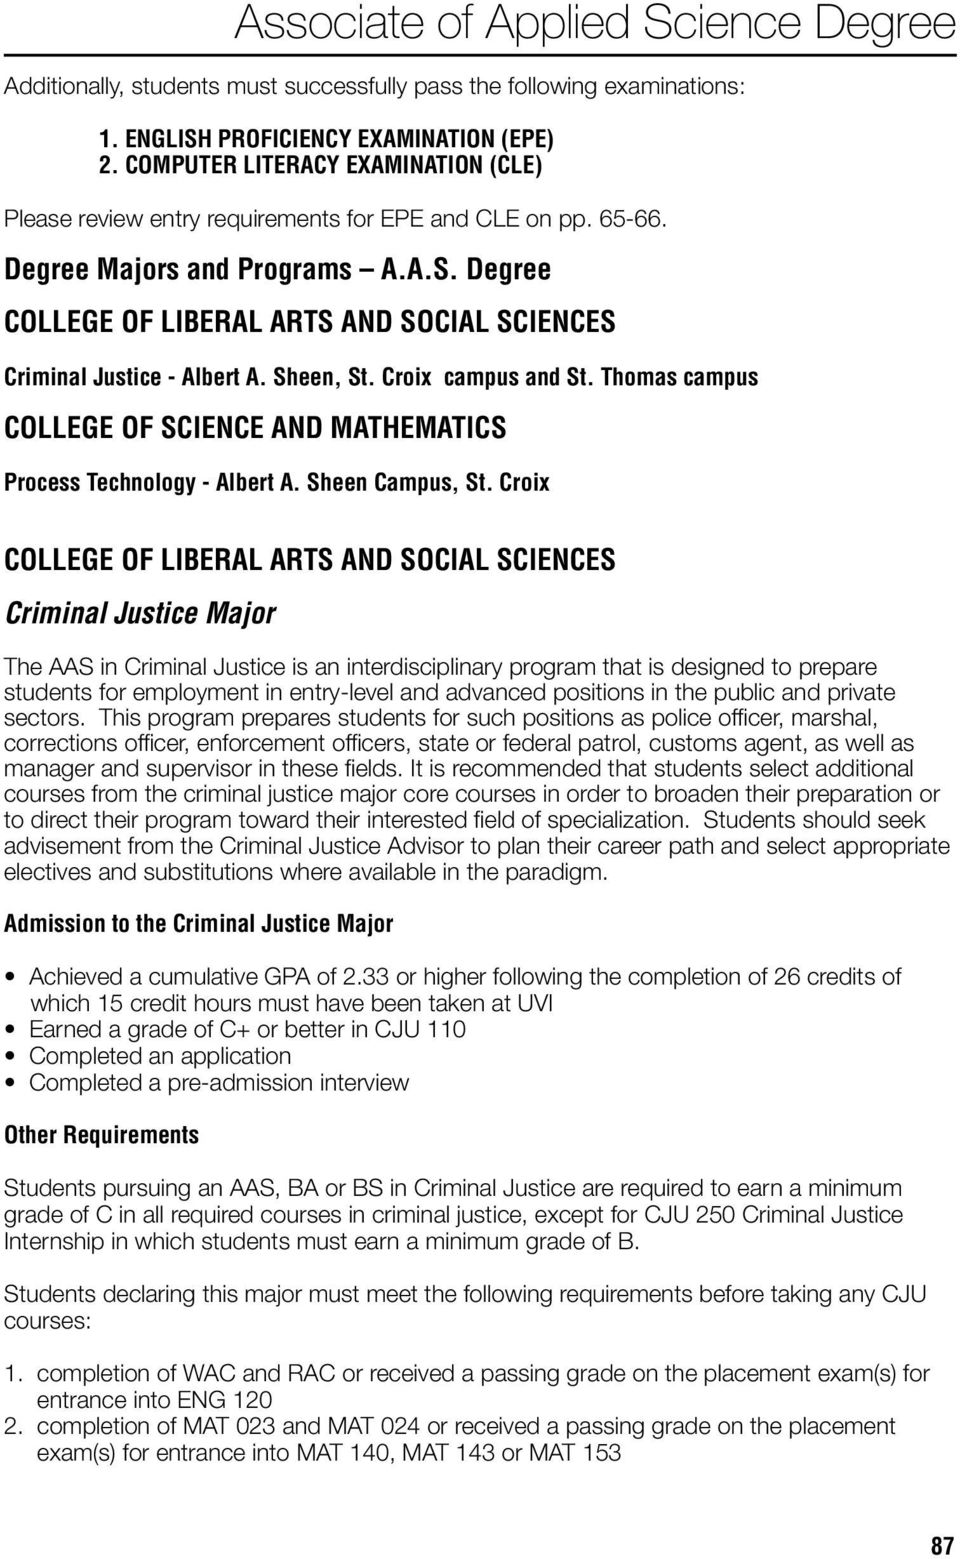 Degree COLLEGE OF LIBERAL ARTS AND SOCIAL SCIENCES Criminal Justice - Albert A. Sheen, St. Croix campus and St. Thomas campus COLLEGE OF SCIENCE AND MATHEMATICS Process Technology - Albert A.